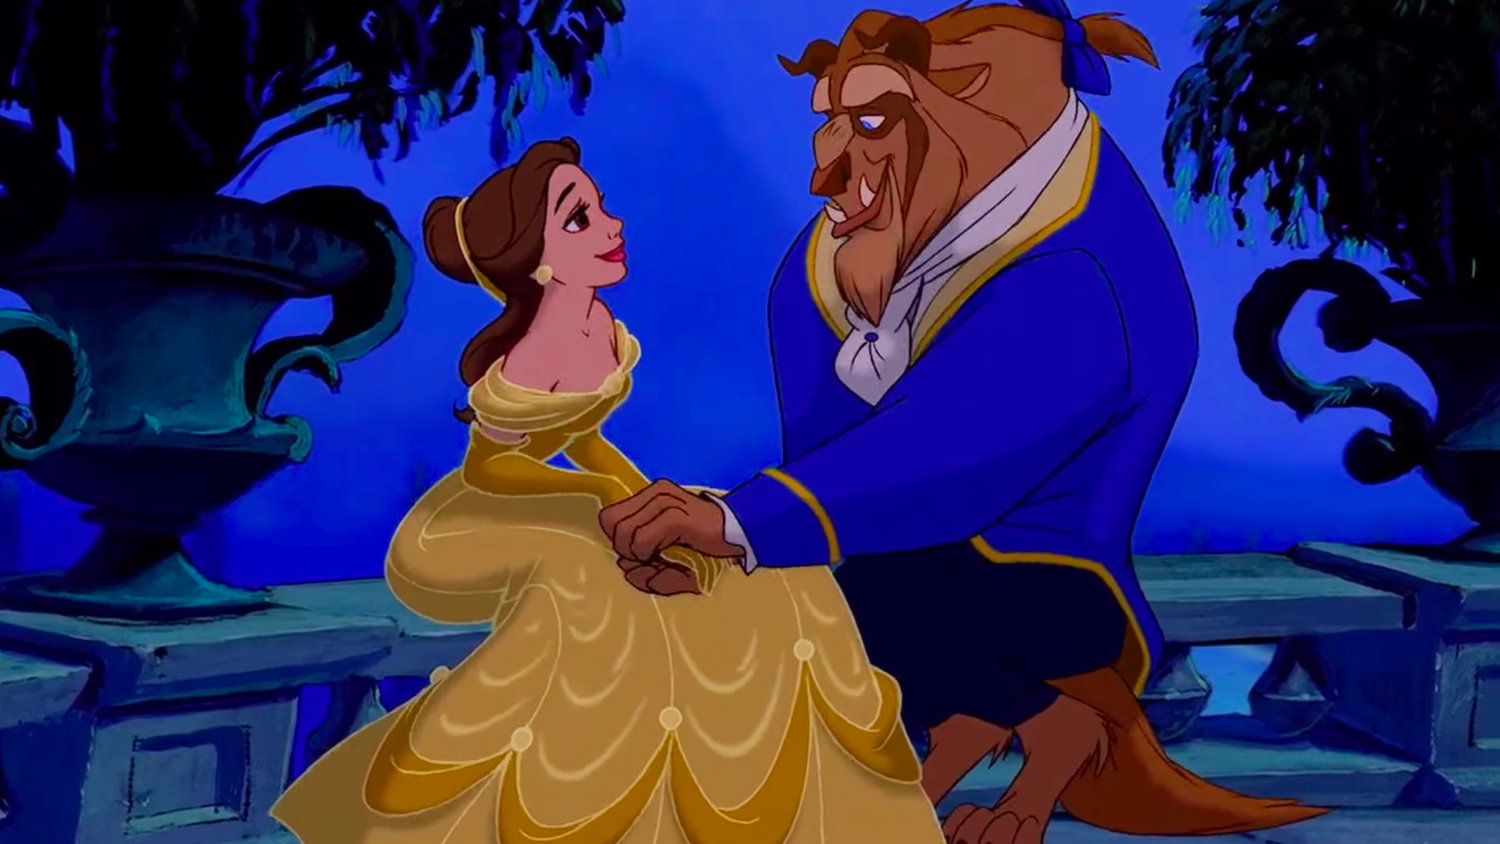 BEAUTY AND THE BEAST Honest Trailer Asks All the Nitpicky Questions You've Wondered About for Years